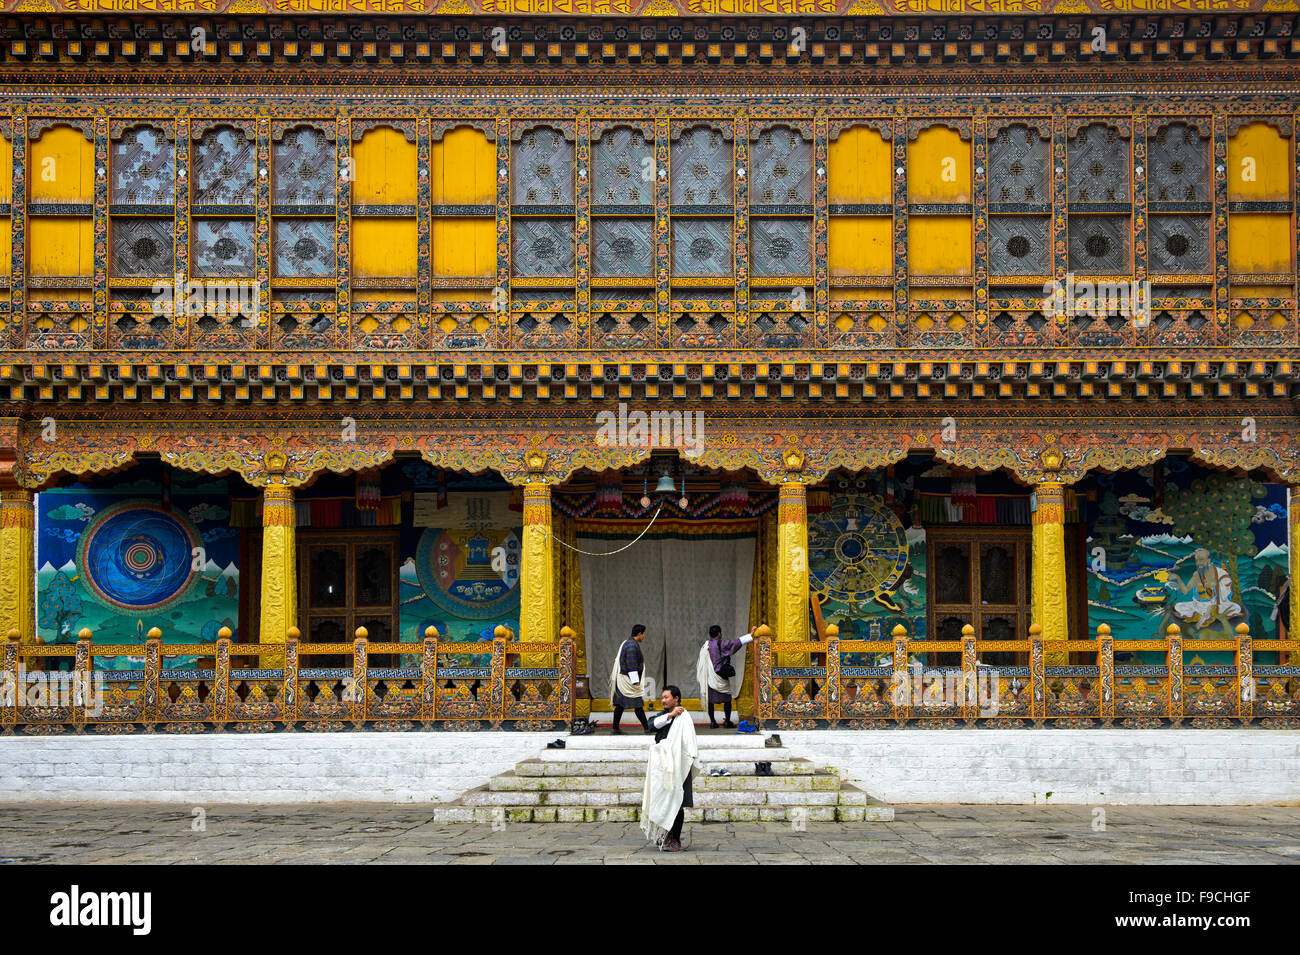 Three local men at the entrance to the coronation temple at the monastery and fortress Punakha Dzong, Punakah, Bhutan - Stock Image